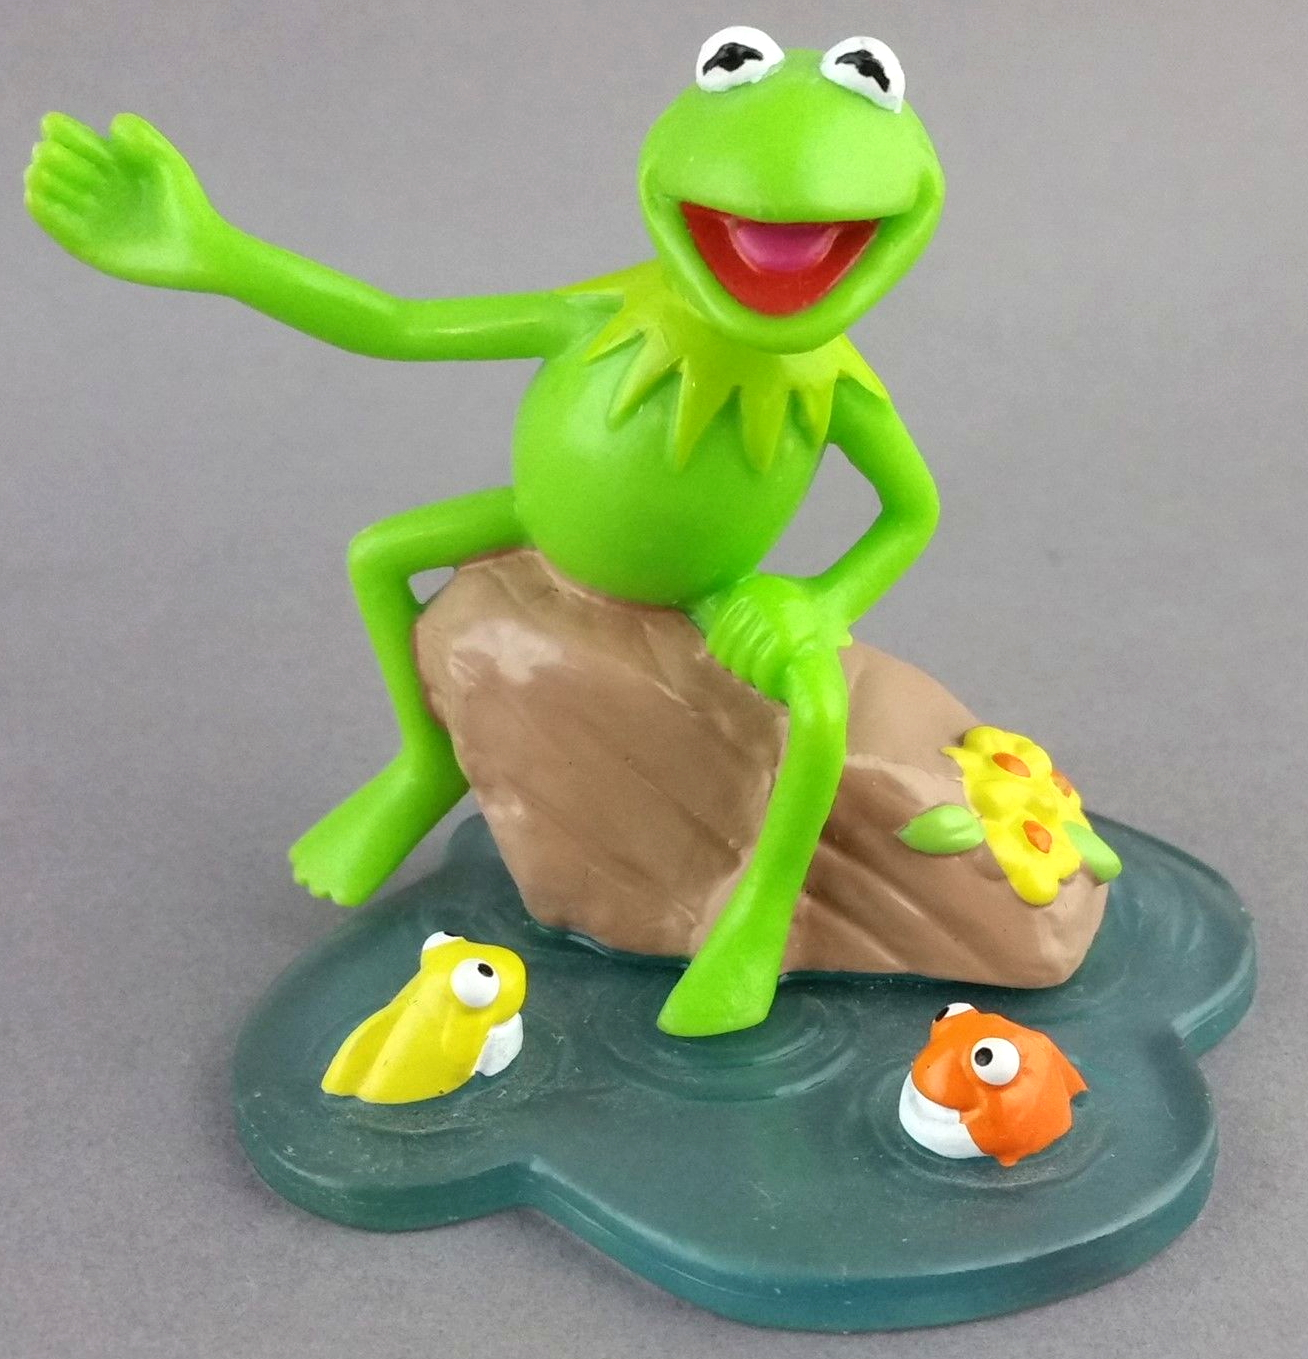 Applause Muppet PVC Figures on oscar and slimey figures